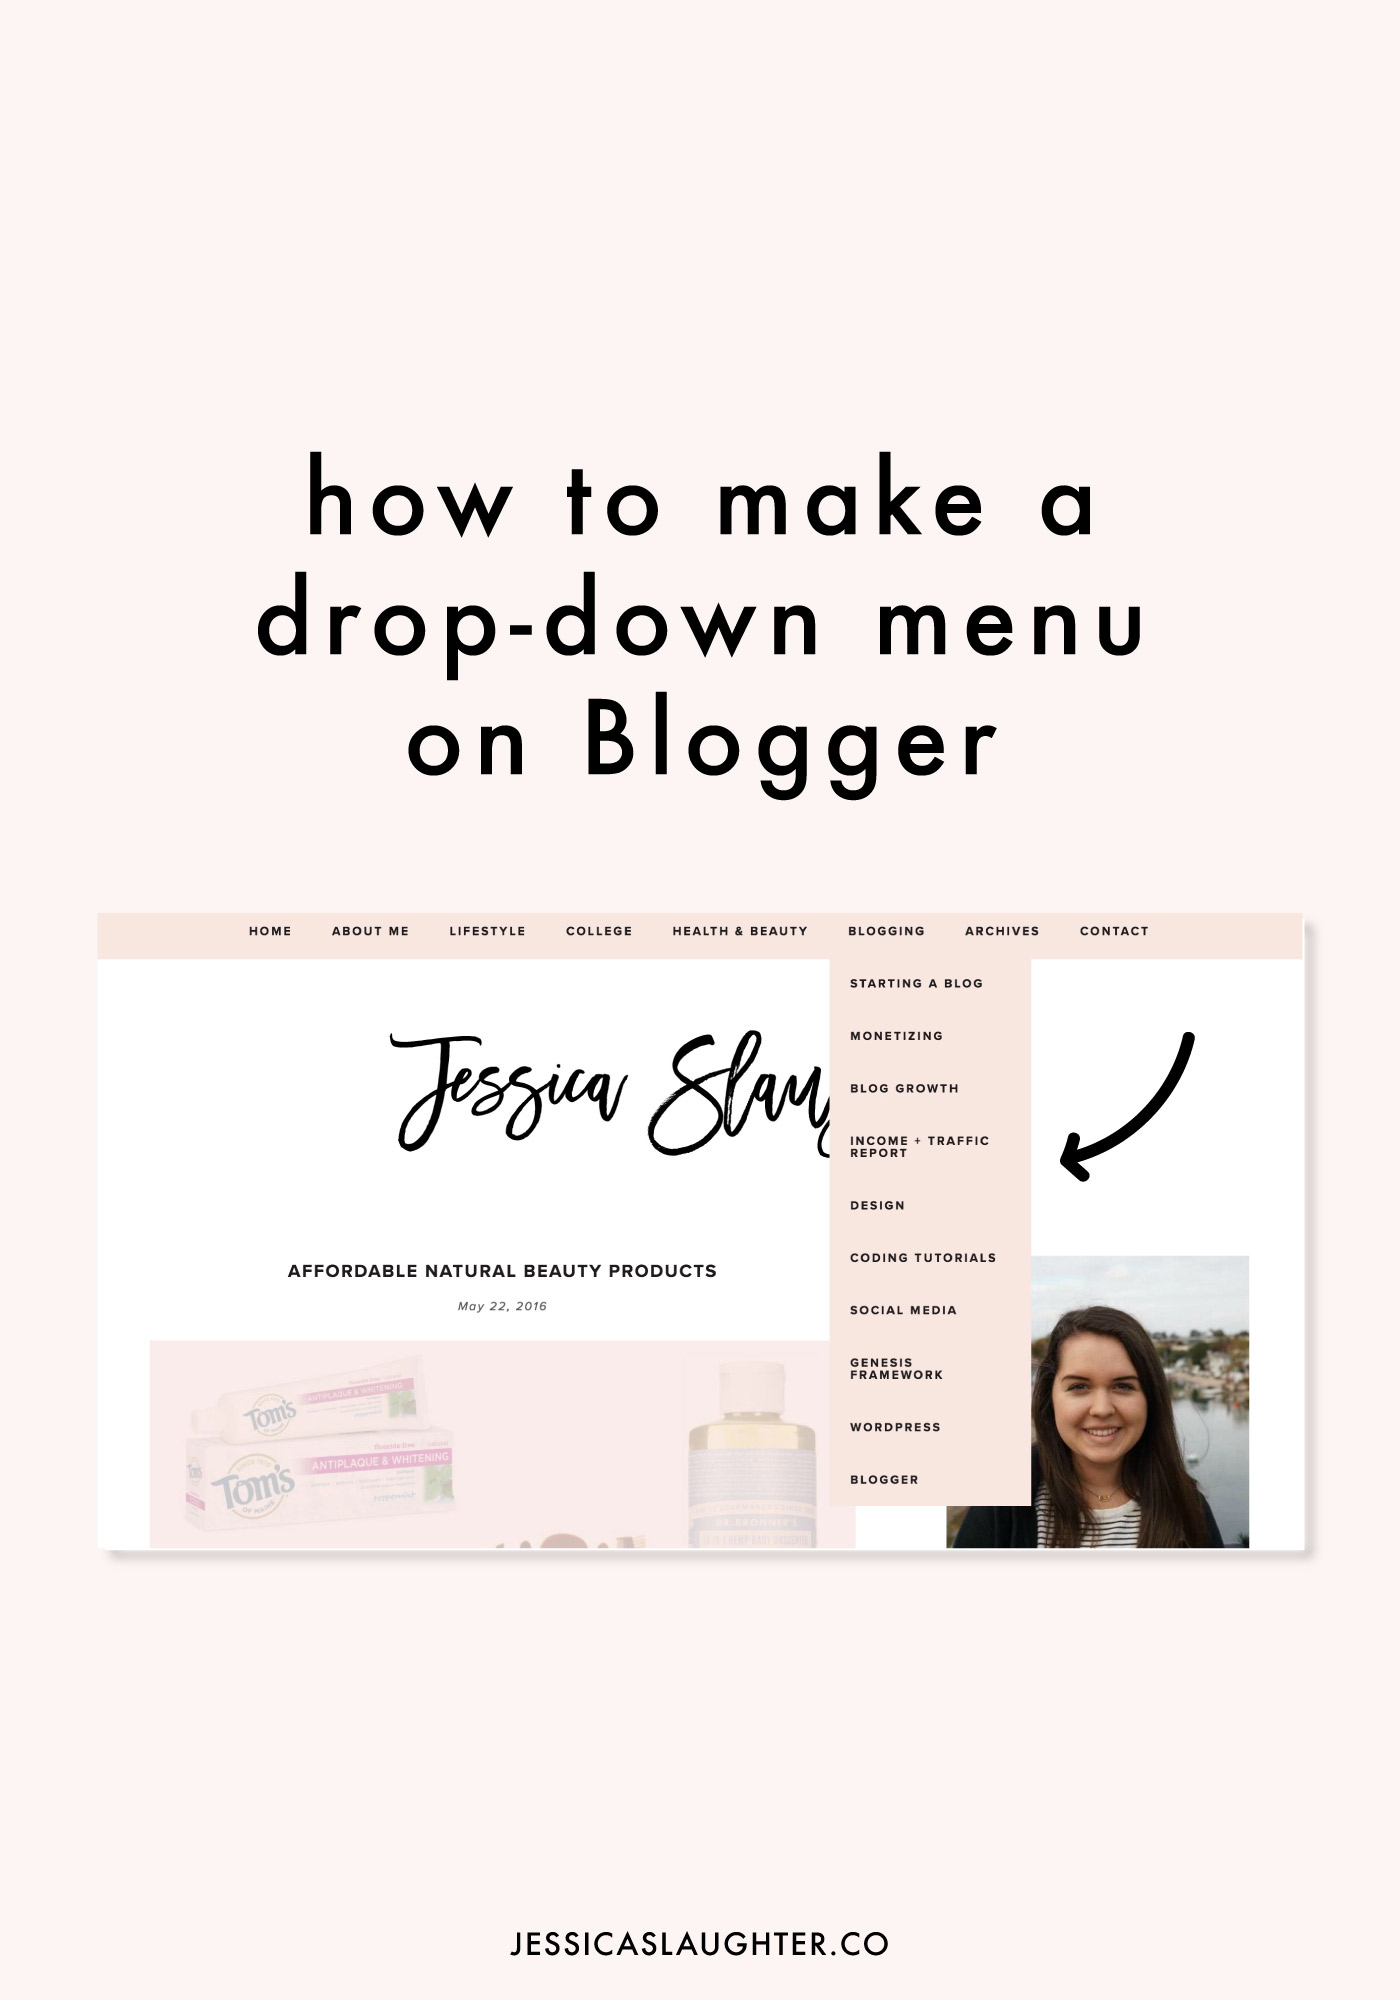 How To Make A Drop-Down Menu on Blogger